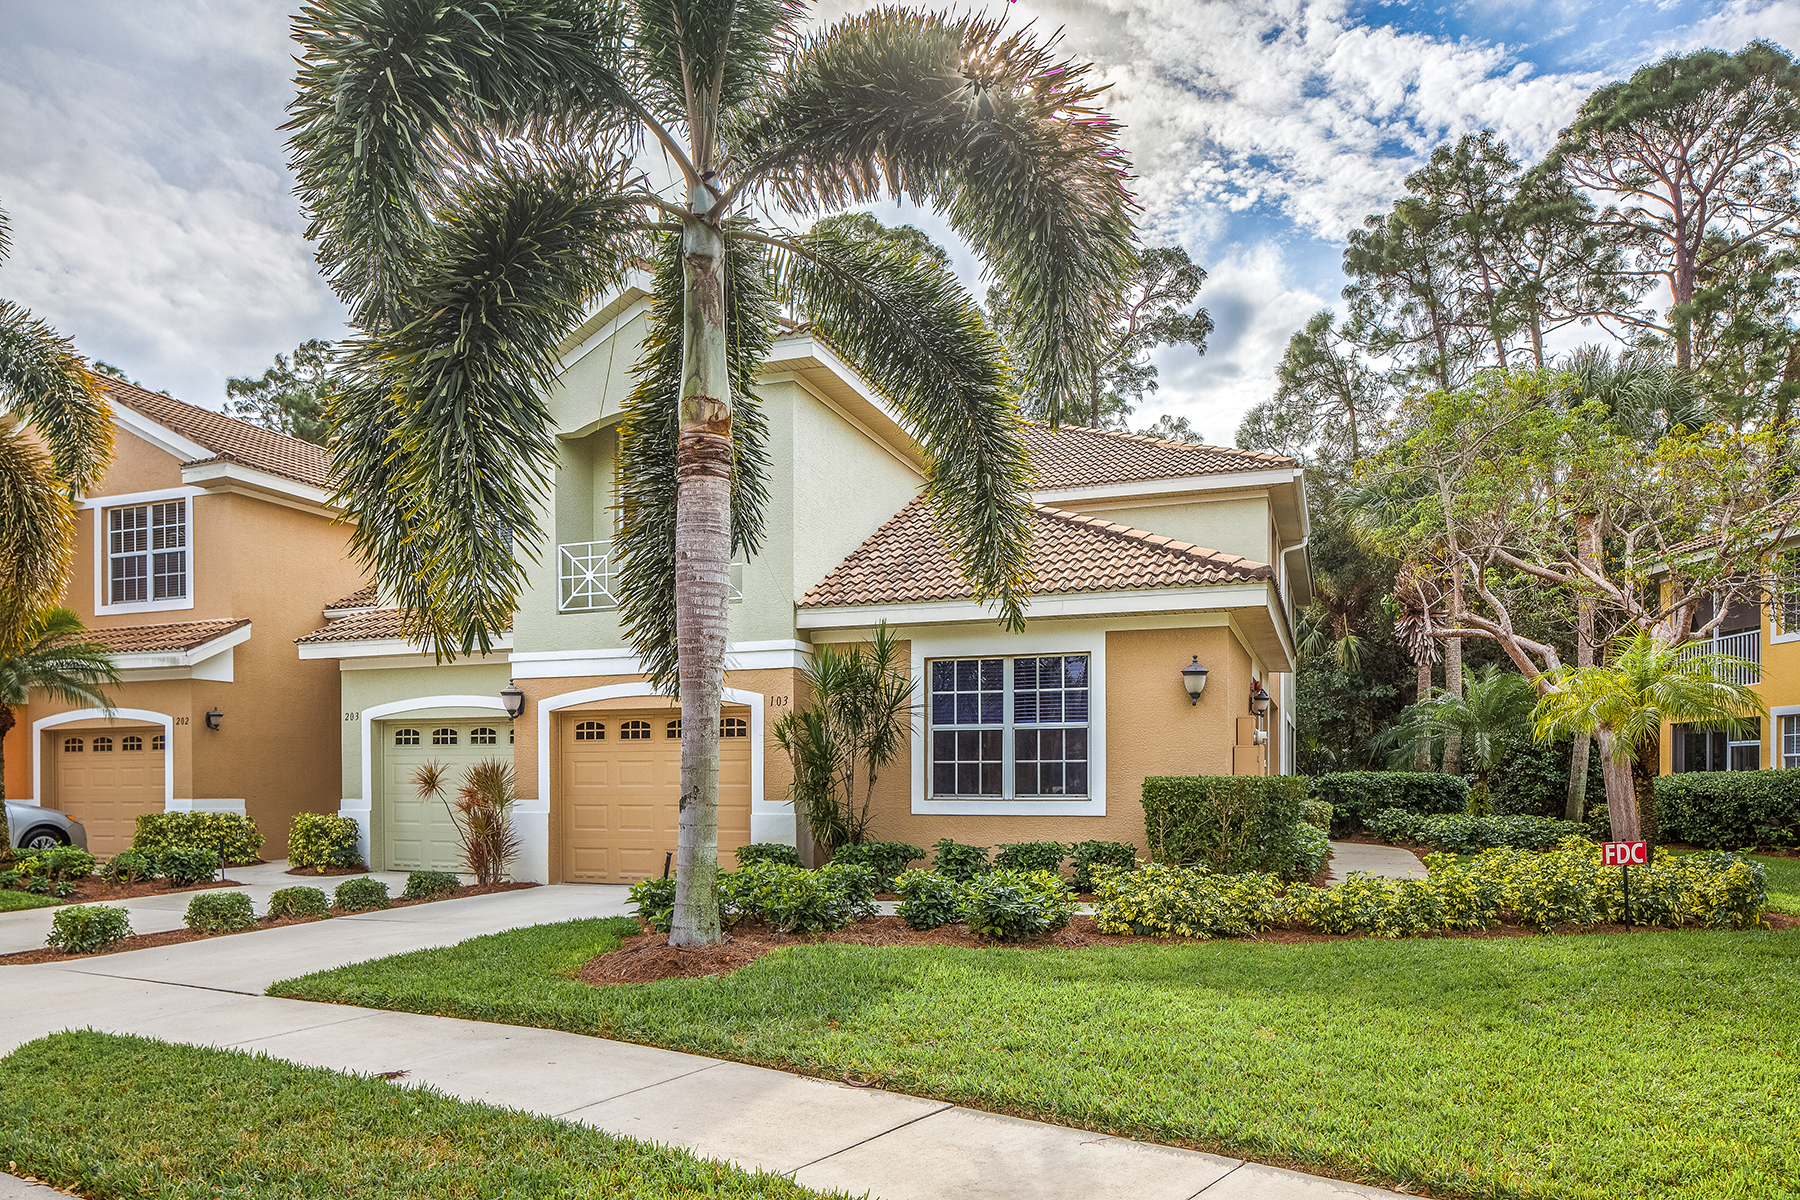 Condominium for Sale at STONEBRIDGE - BRAEBURN 1675 Winding Oaks Way 103 Naples, Florida, 34109 United States